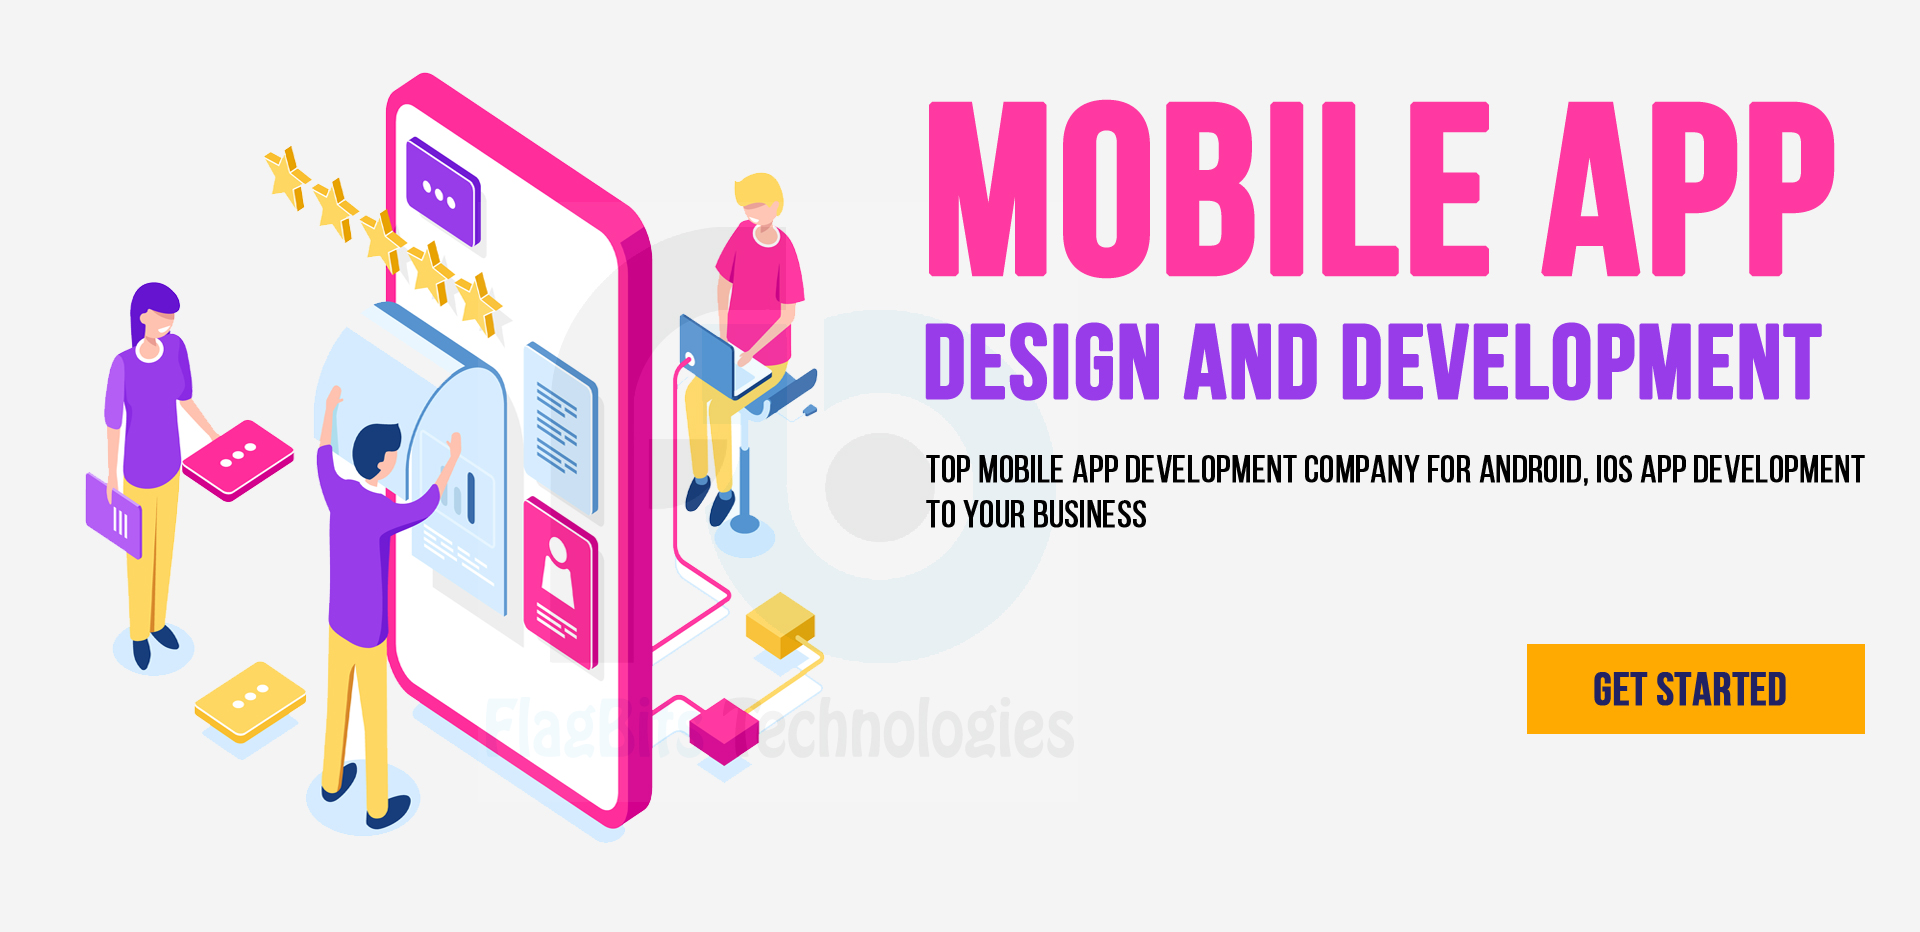 mobile app design development company in greater noida delhi ncr india